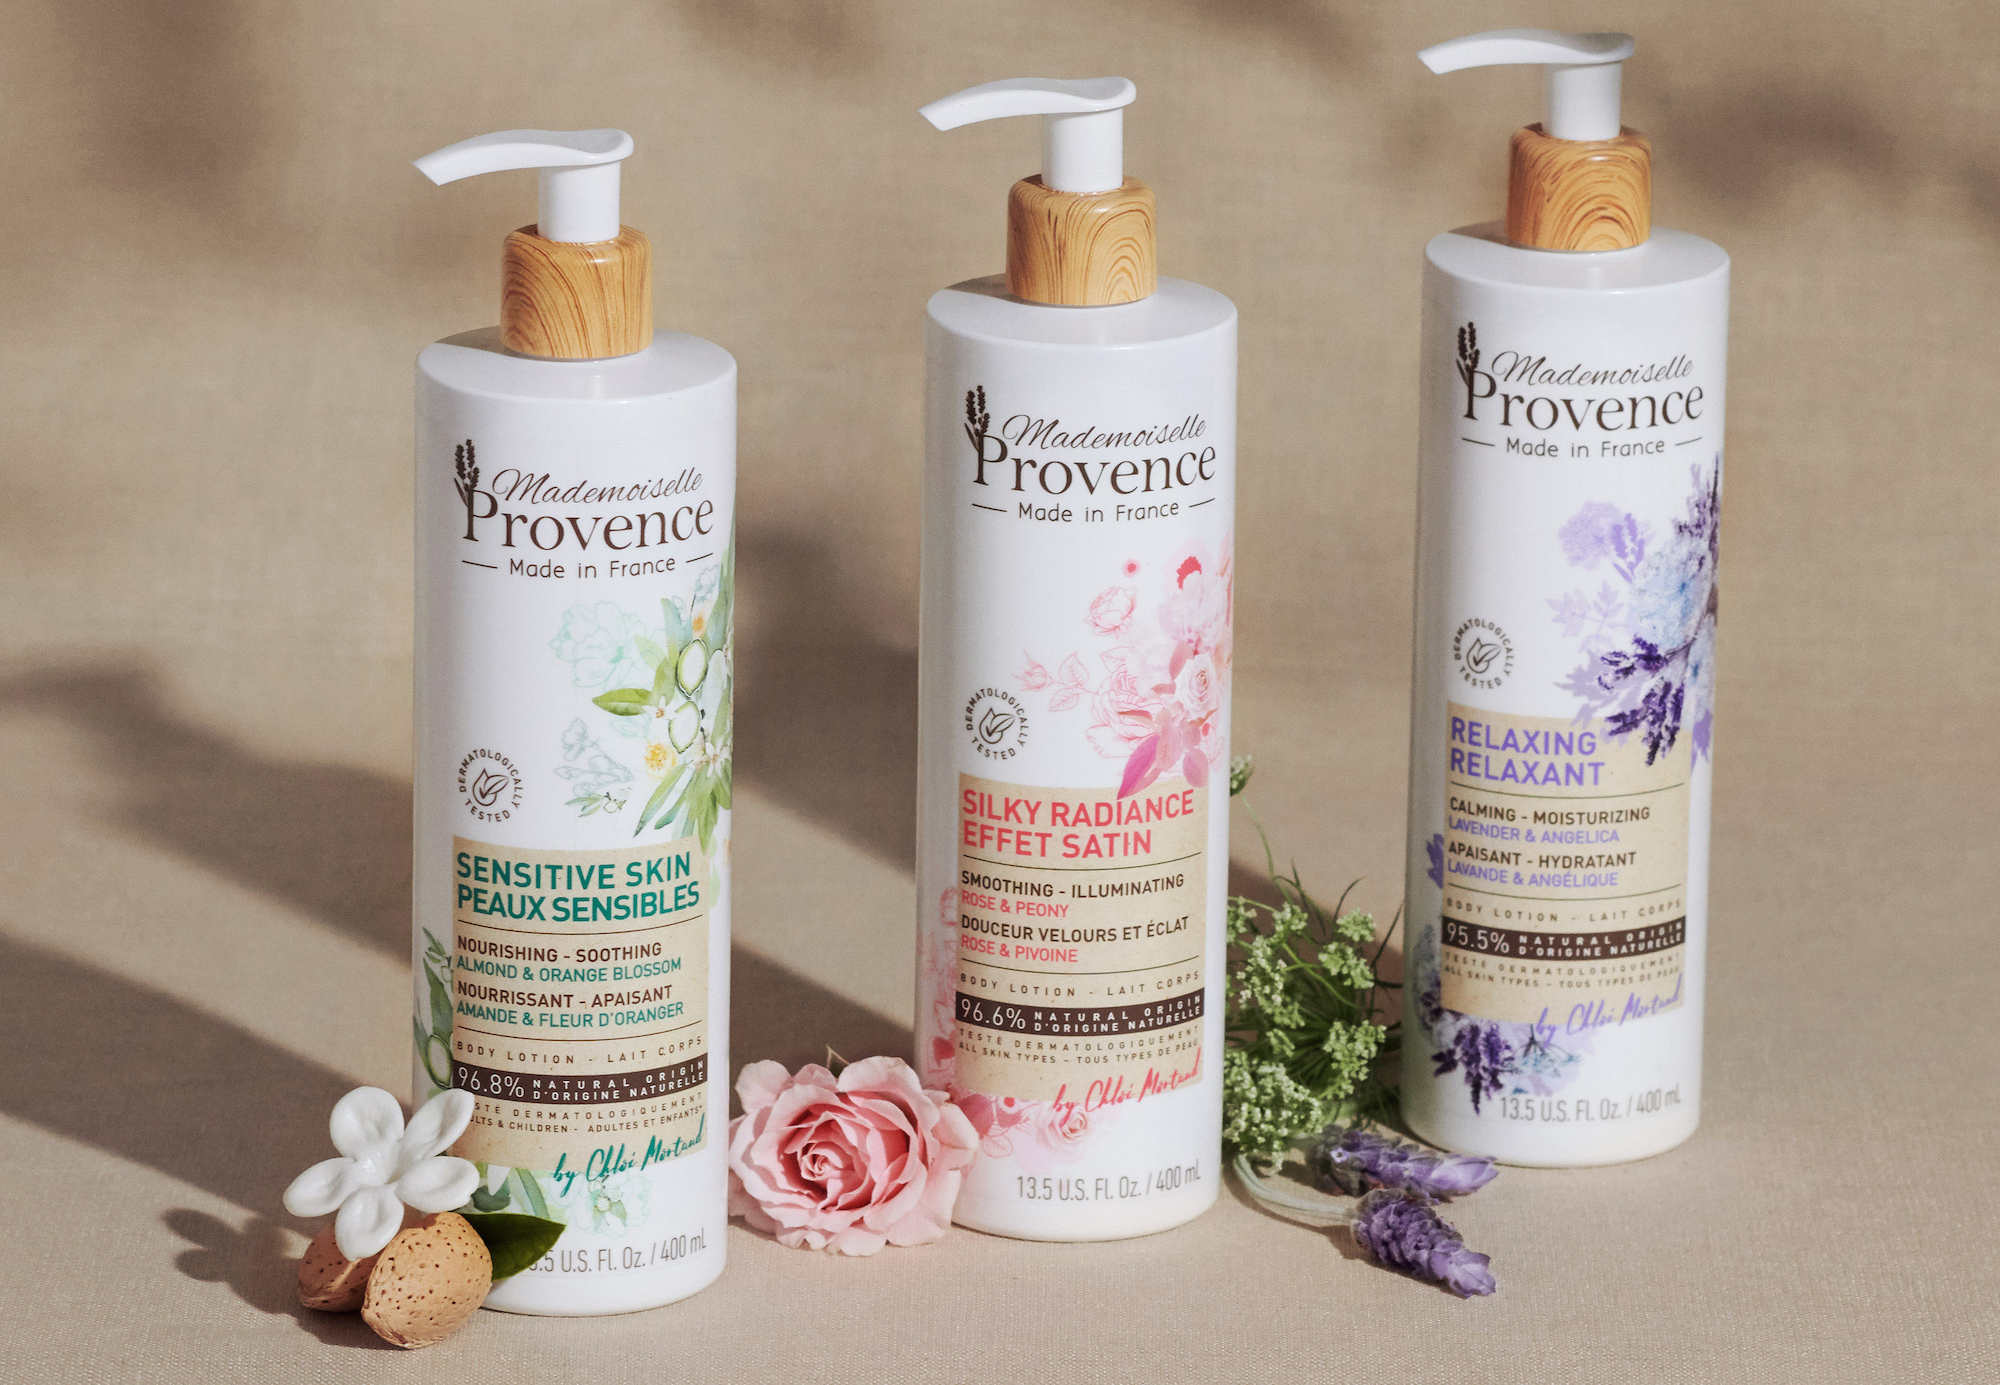 Mademoiselle Provence Brings Affordable French Body Care To Target - Beauty Independent